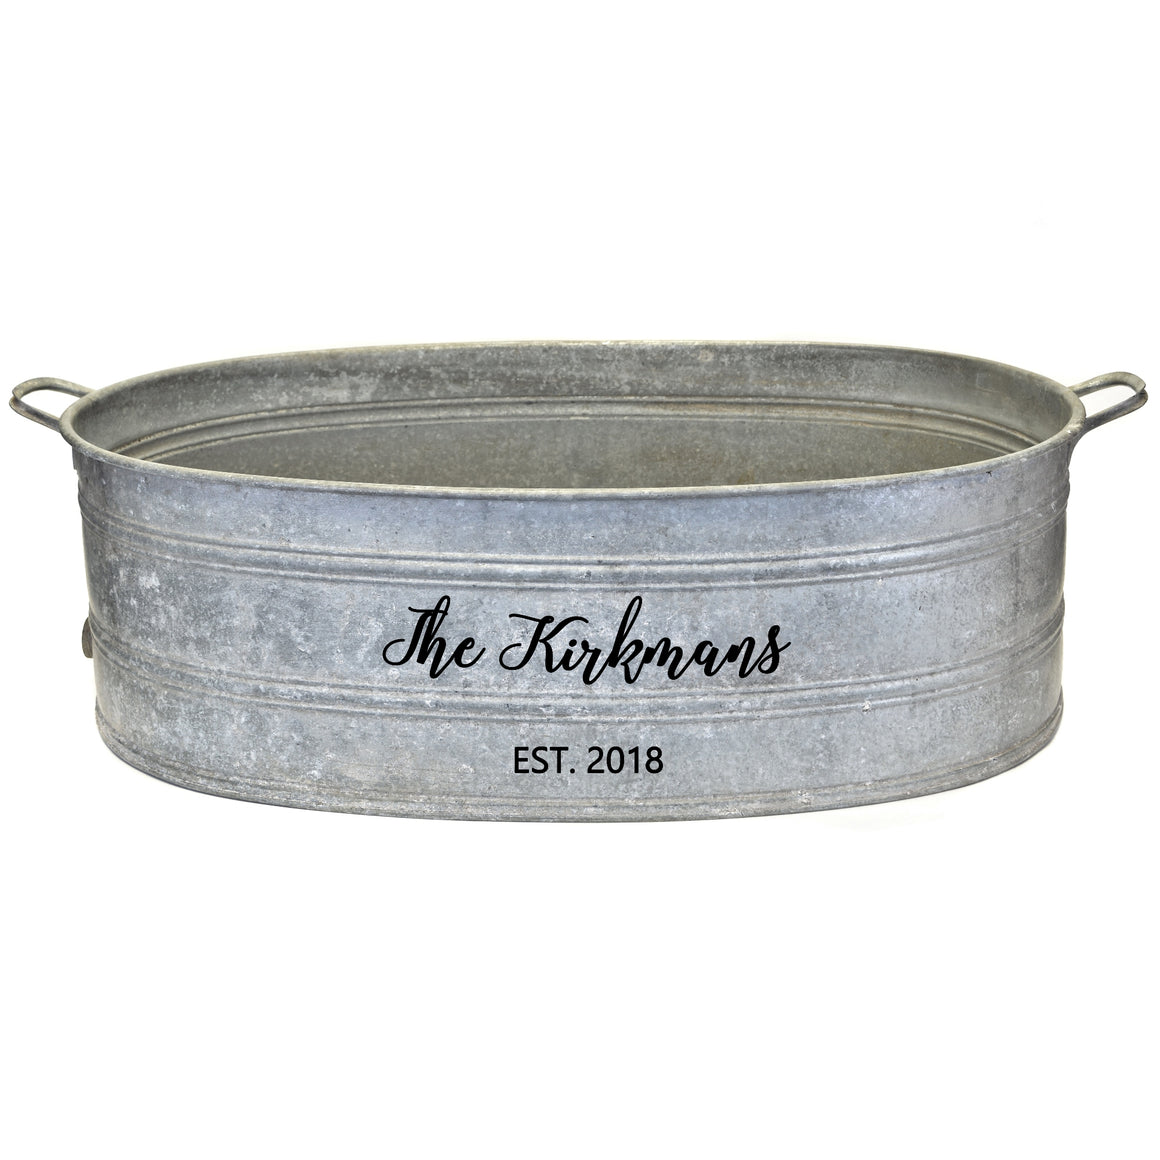 French Vintage Zinc Tub with Custom Personalization - A Southern Bucket